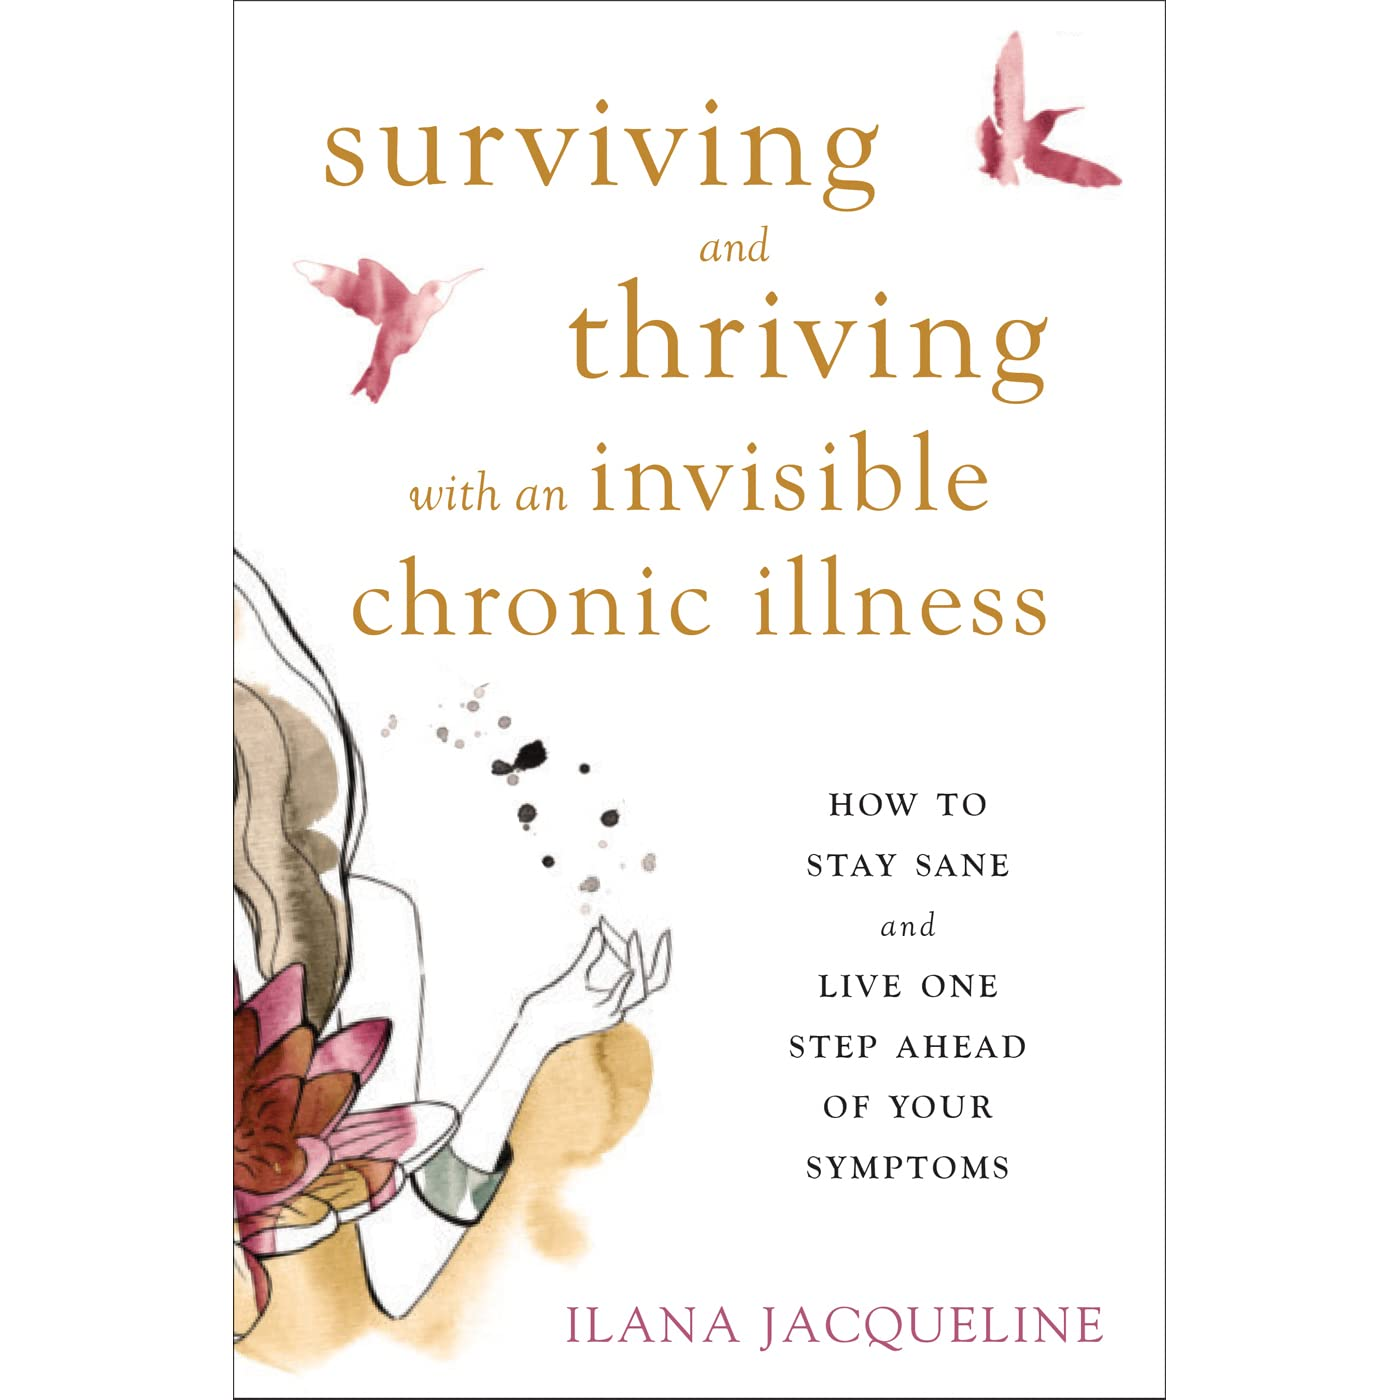 surviving and thriving with an invisible chronic illness how to stay sane and live one step ahead of your symptoms